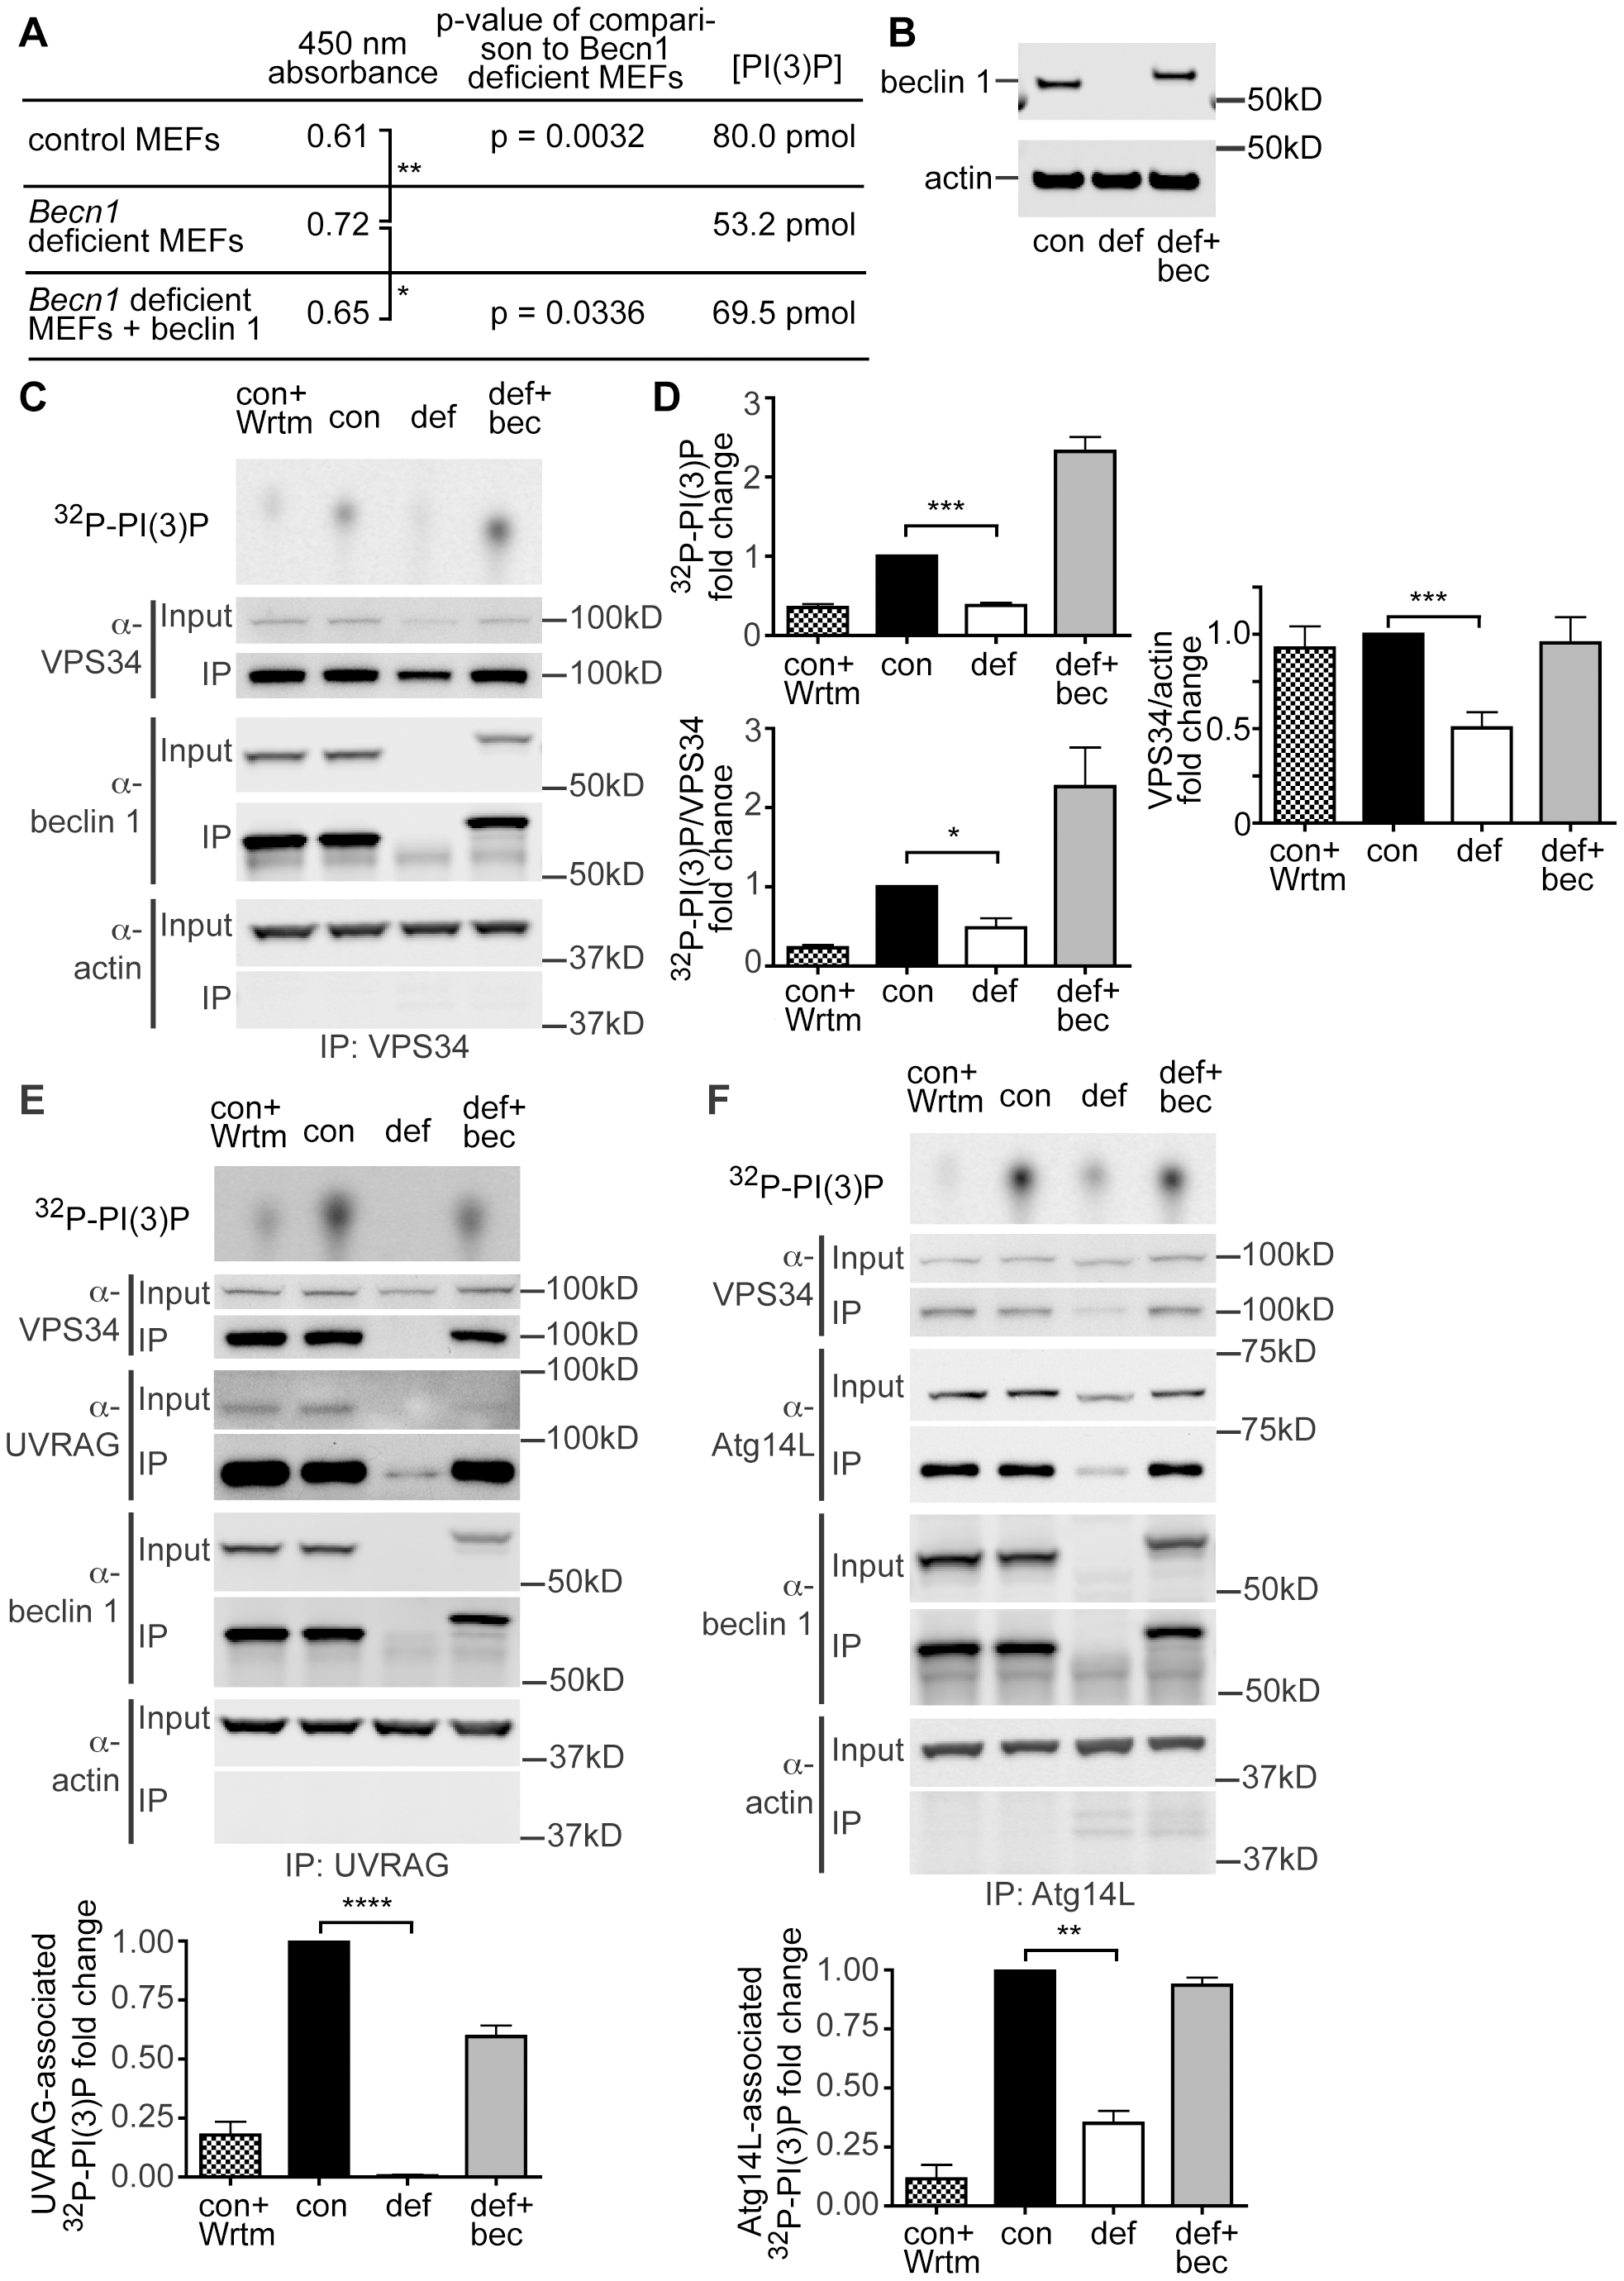 PI(3)P and VPS34 lipid kinase activity is decreased in <i>Becn1</i> deficient MEFs.